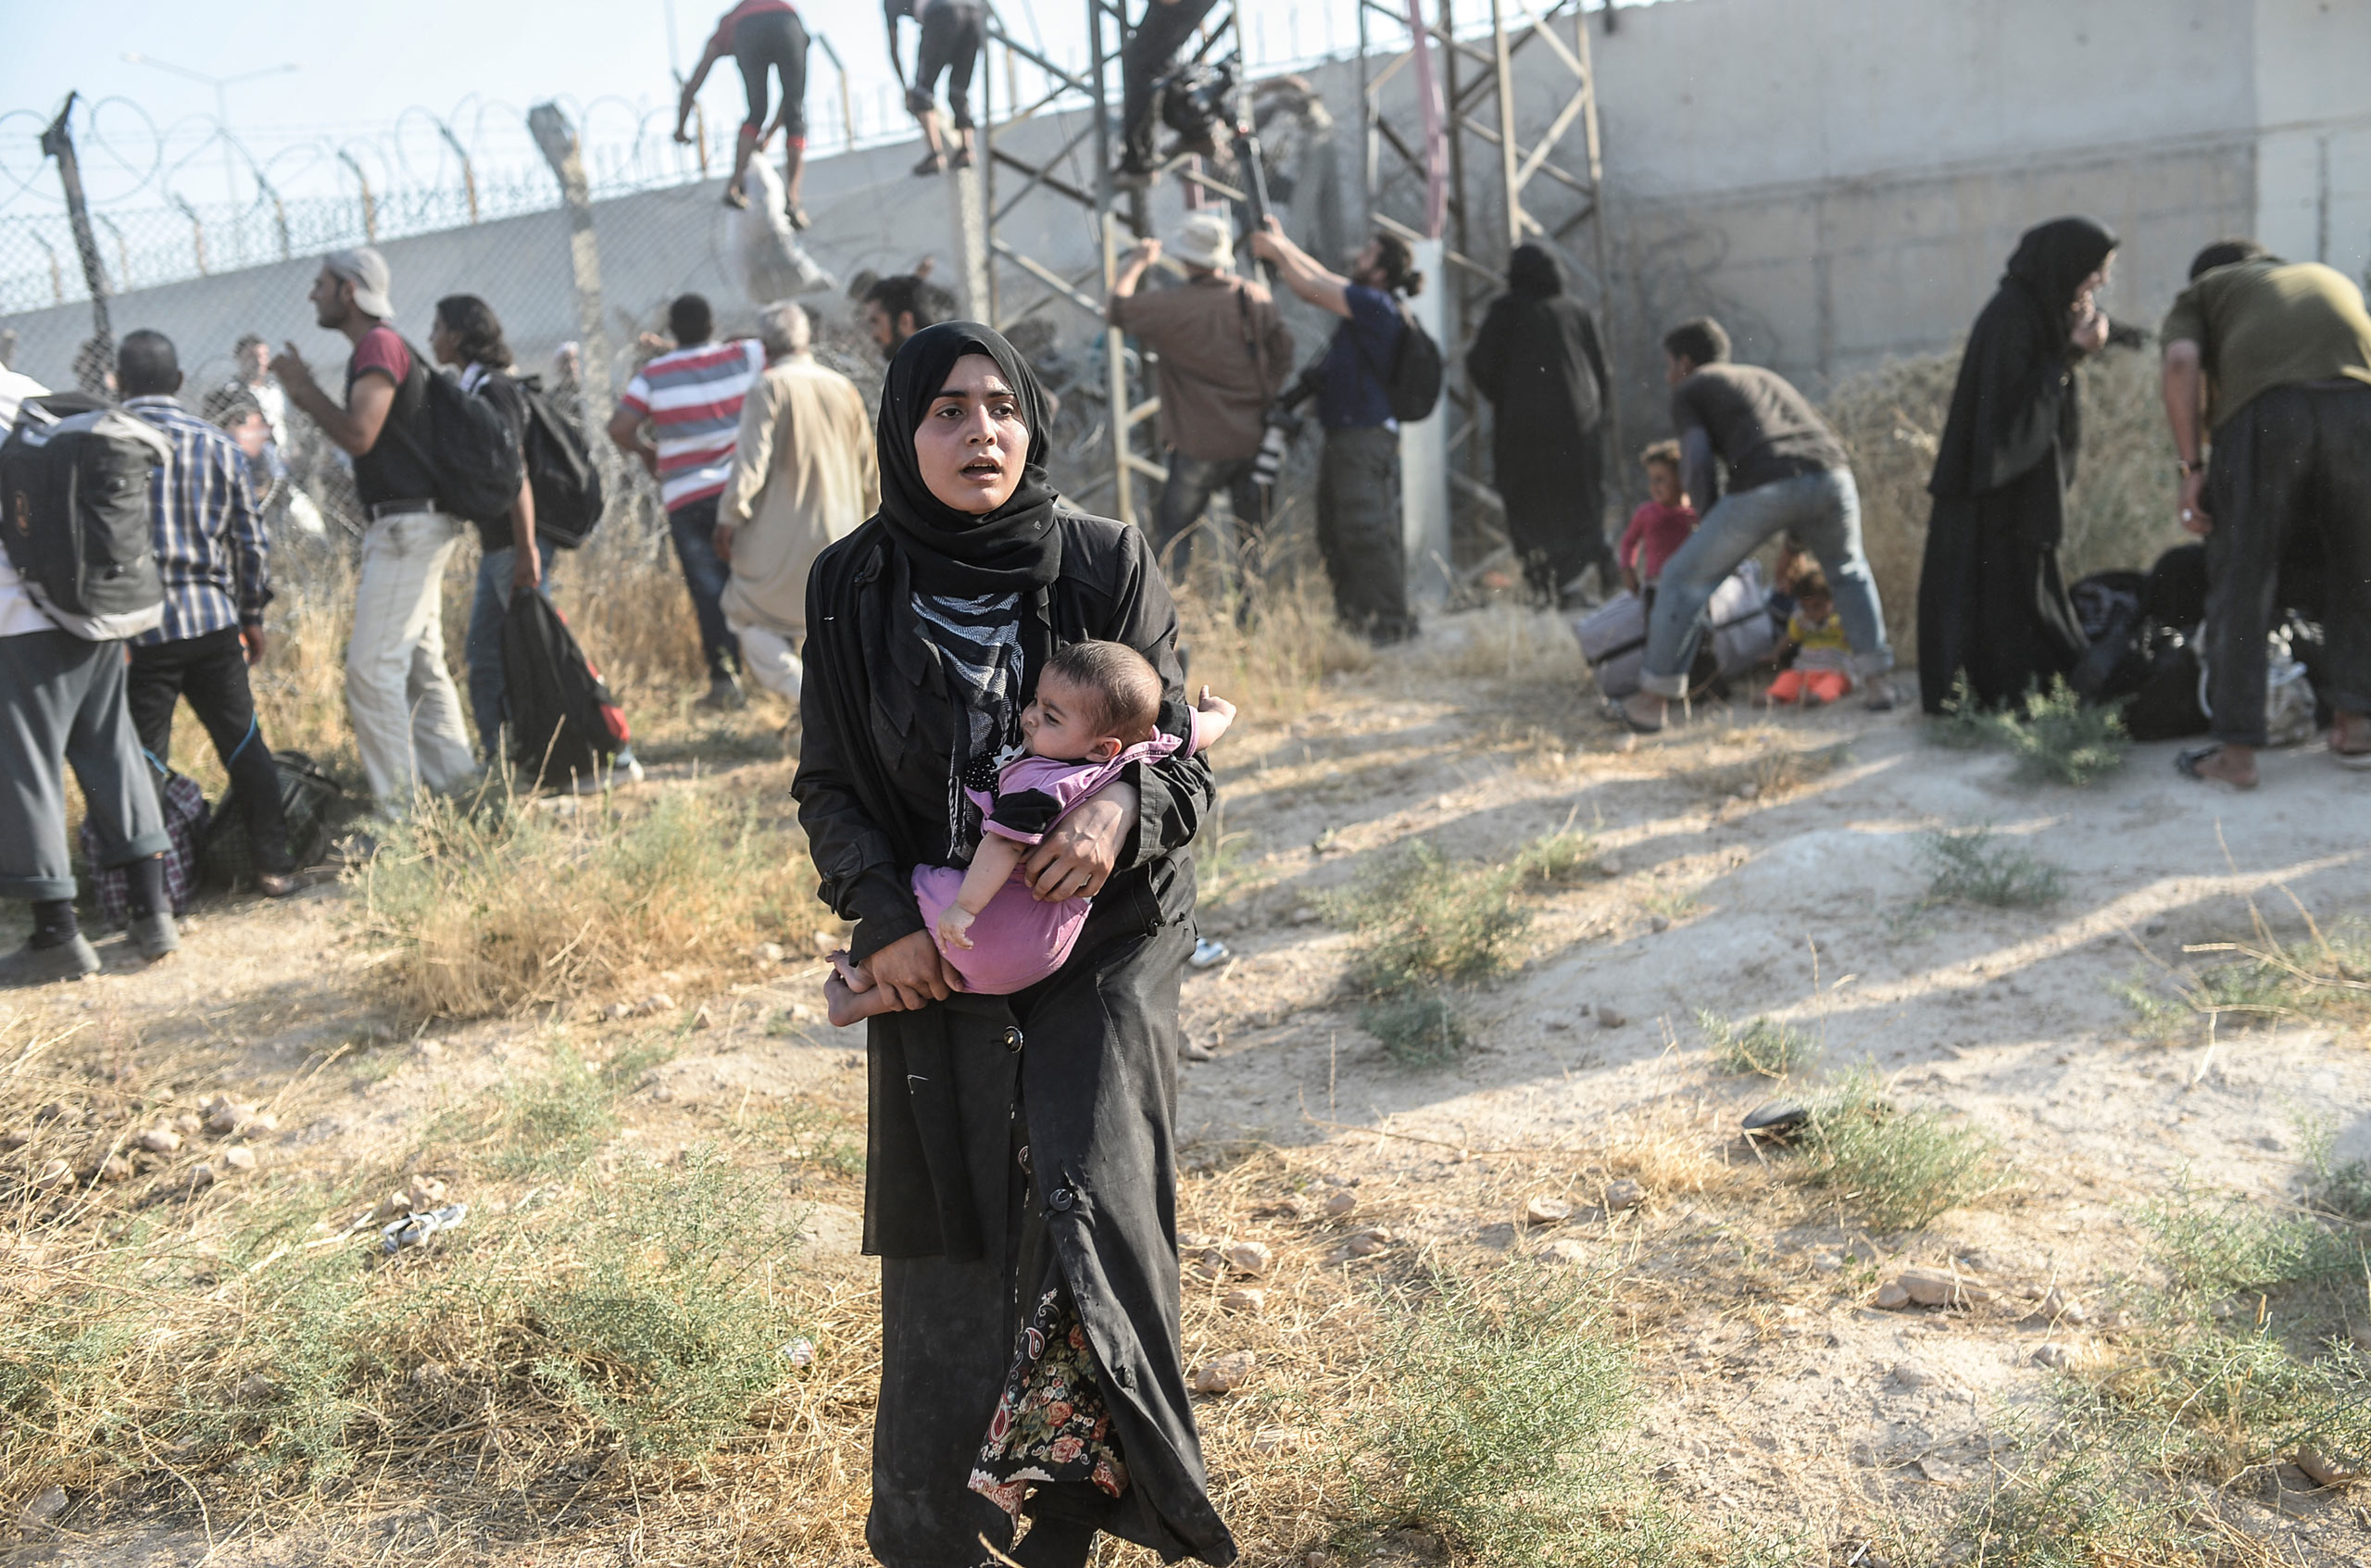 A woman carries her baby near the fences at the crossing gate between the Syrian town of Tell Abyad and Akçakale, in the Turkish Şanlıurfa province.  June 14, 2015.